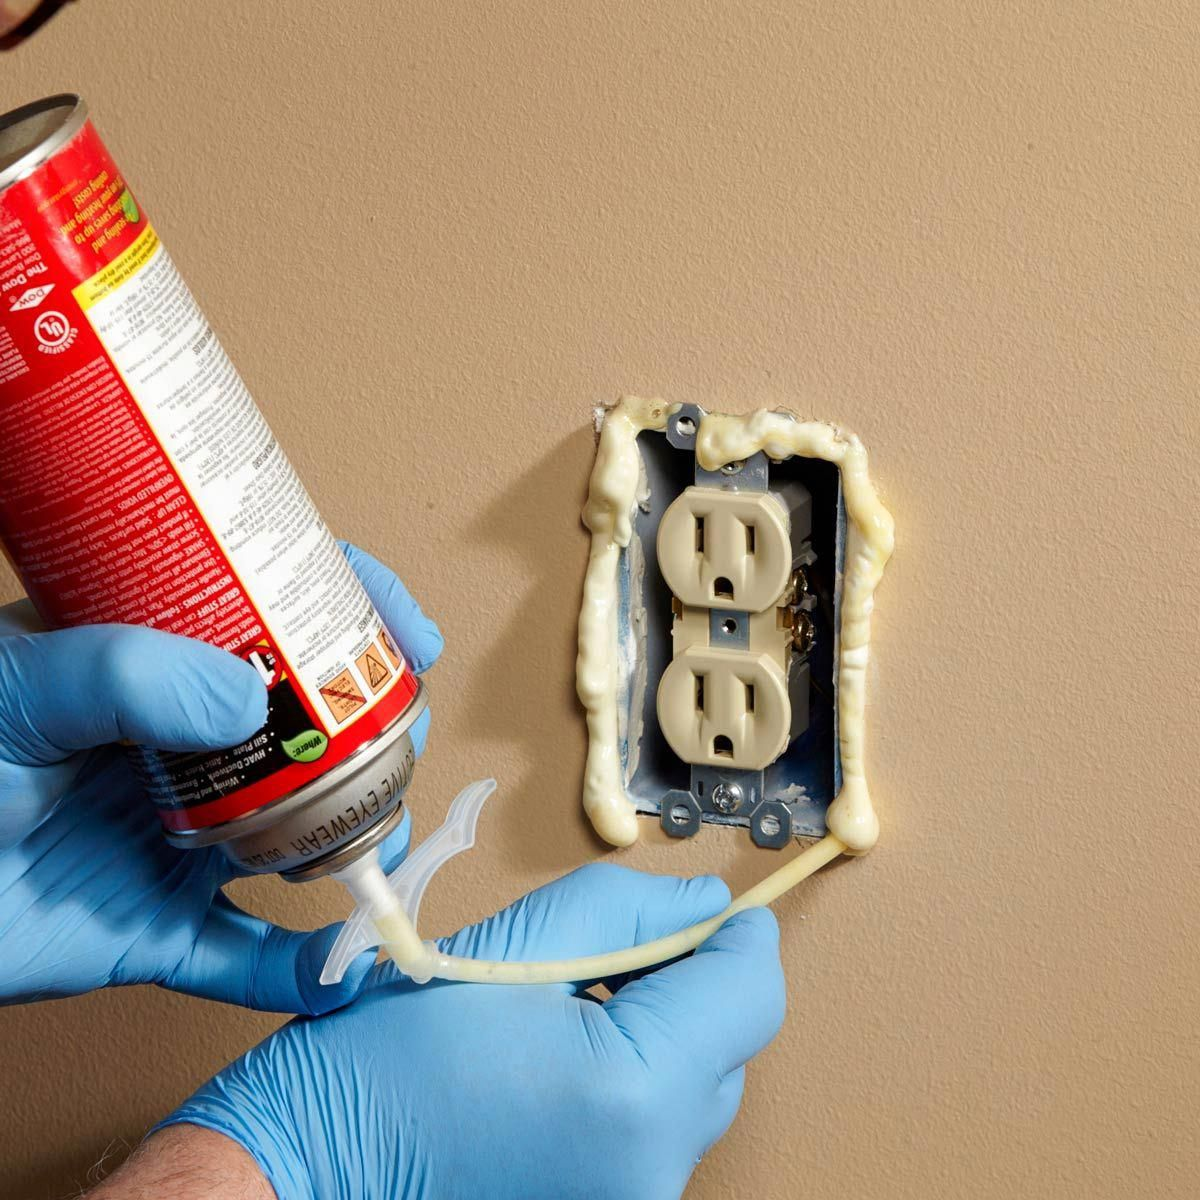 Outlet Insulation Stops Cold Air Coming Through Electrical